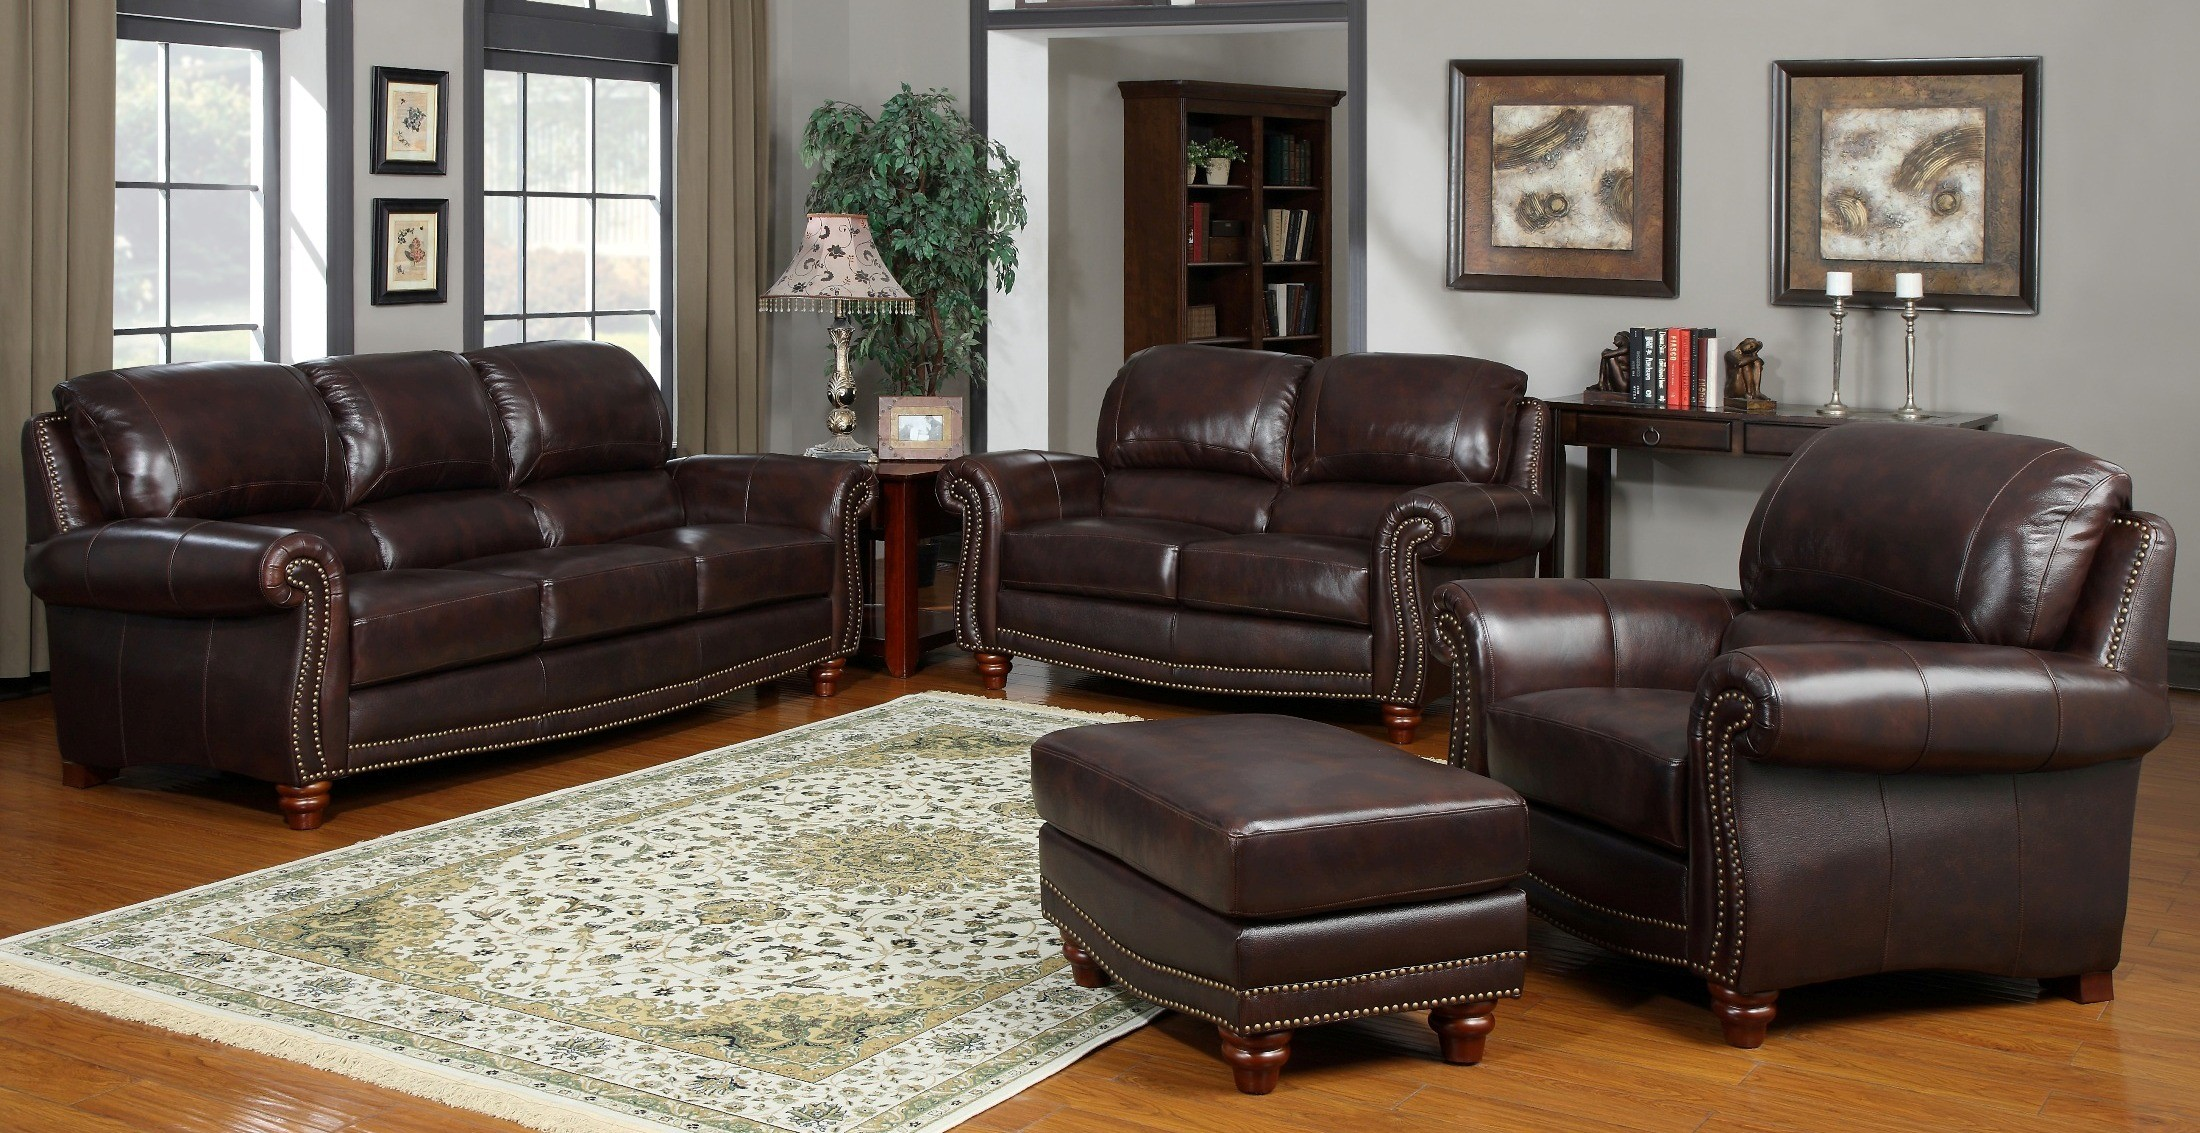 James tobacco living room set from leather italia for Front room sets